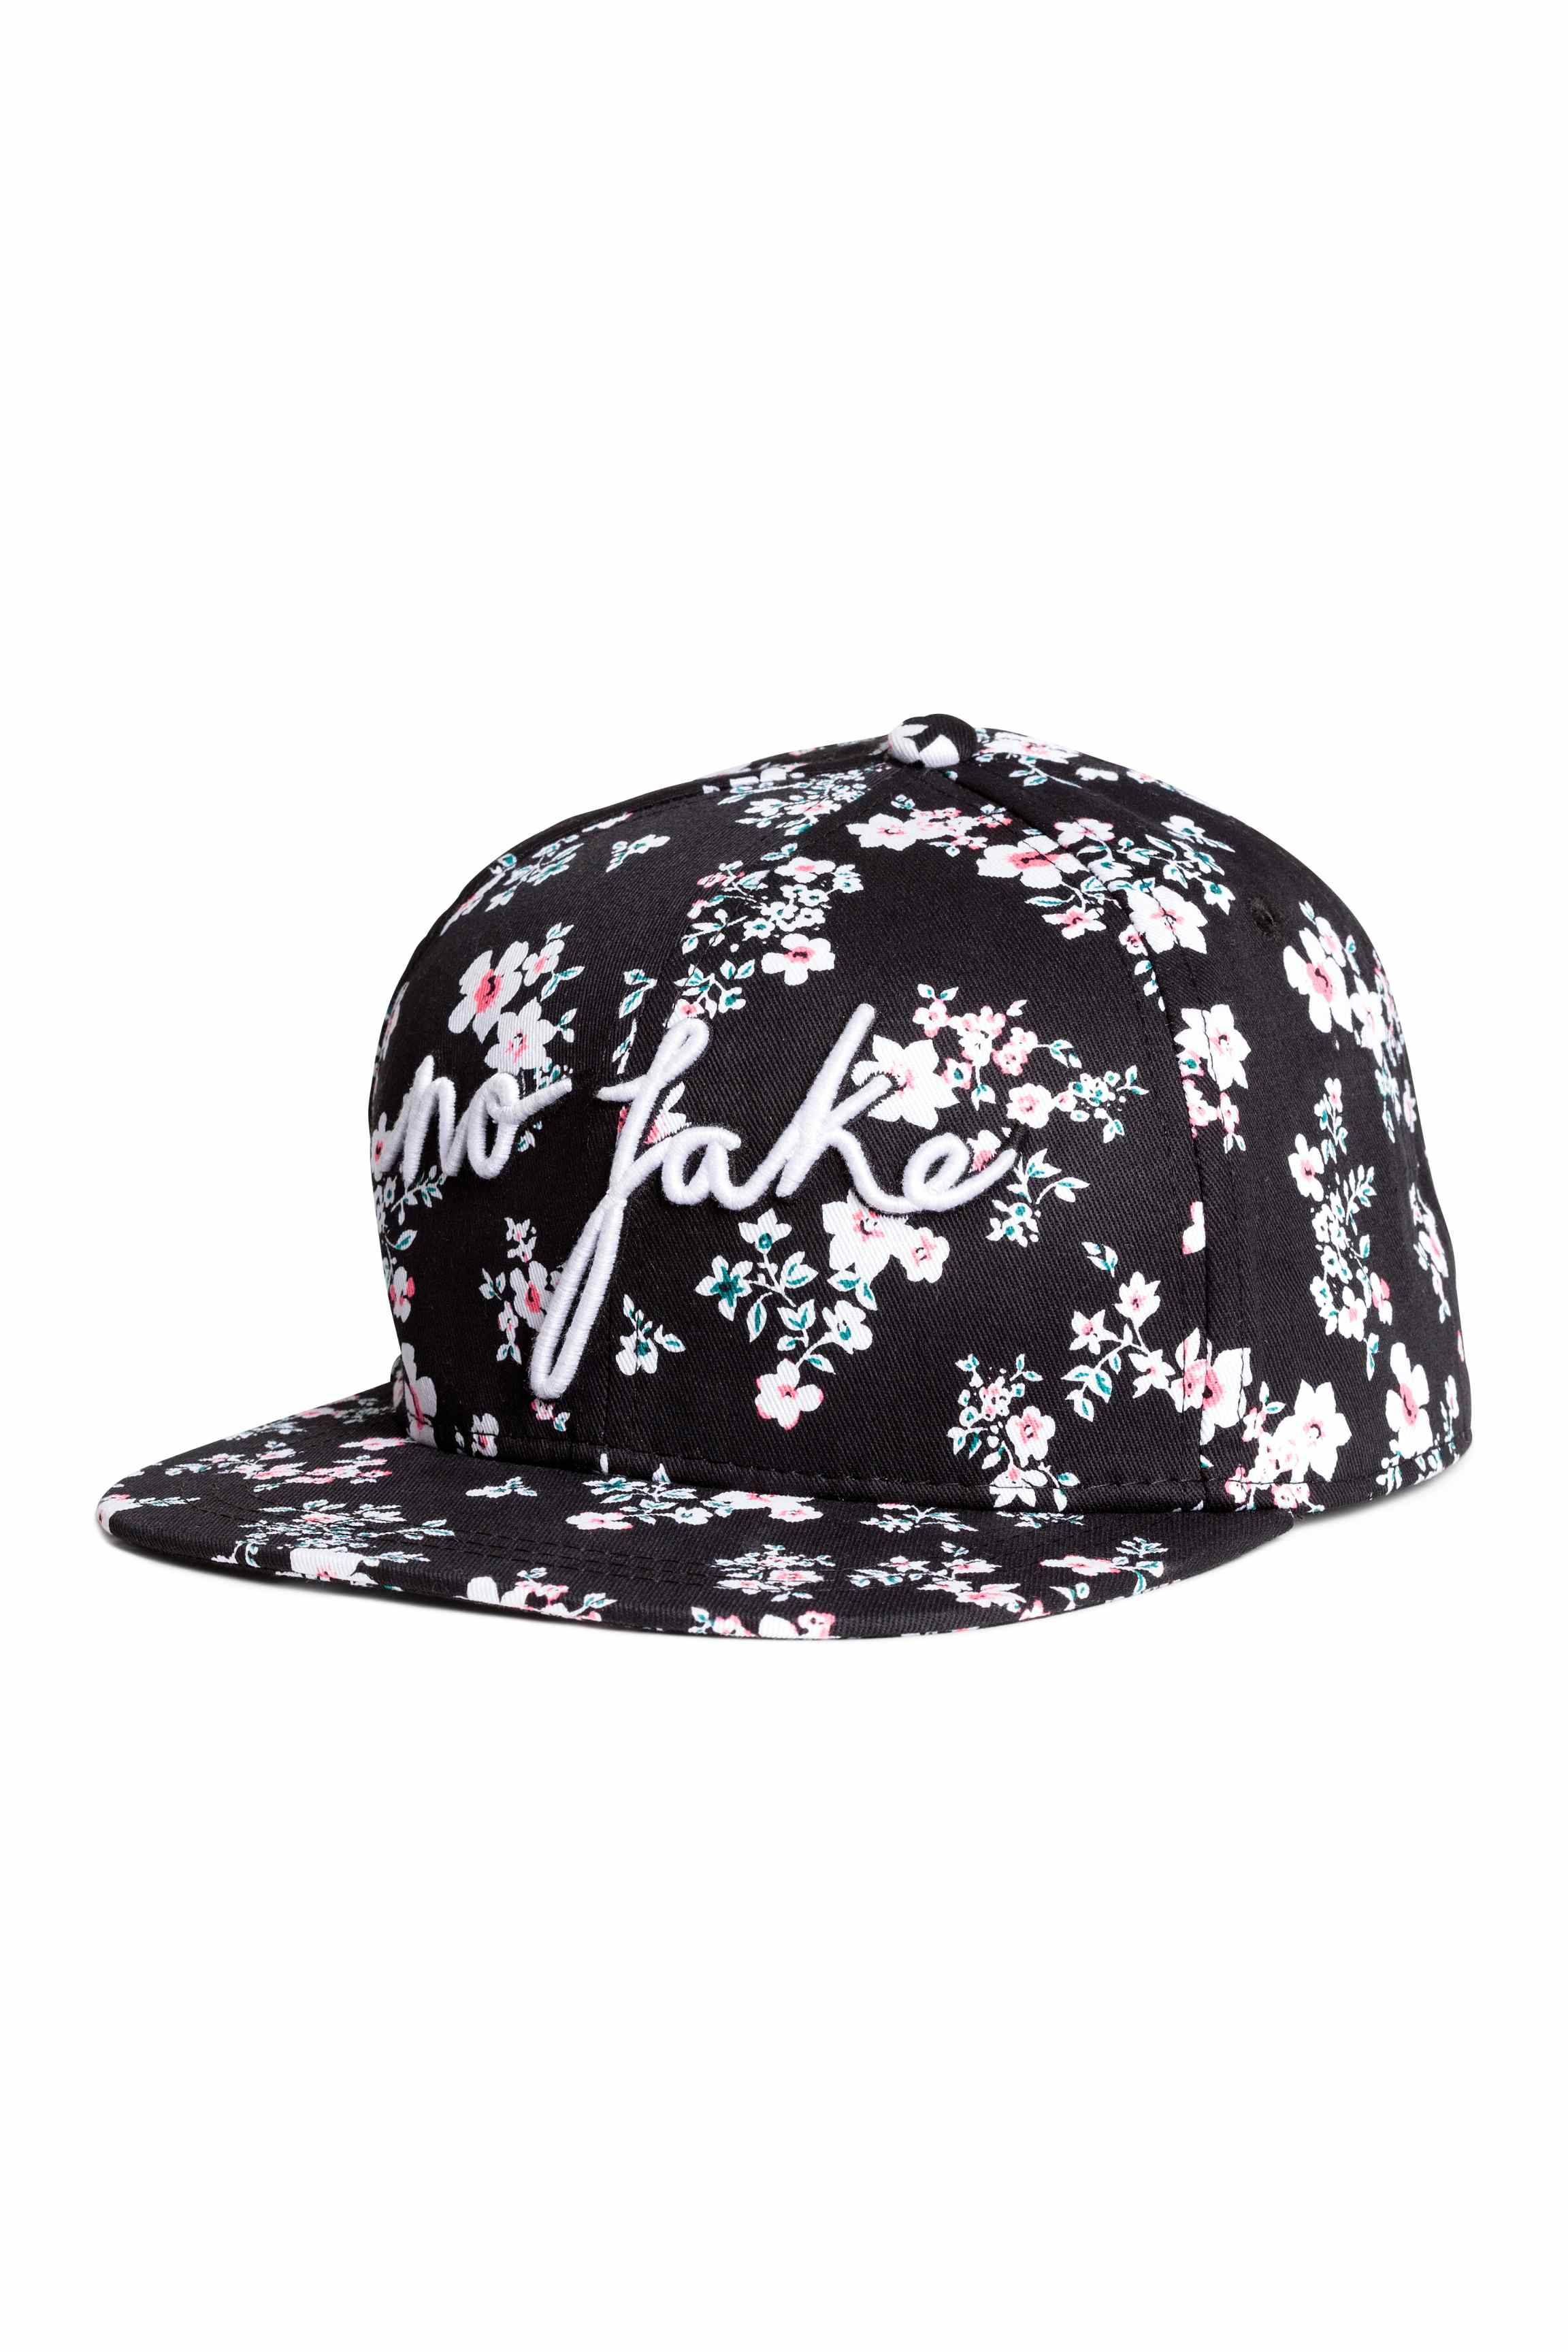 H&m Patterned Cotton Cap in Black